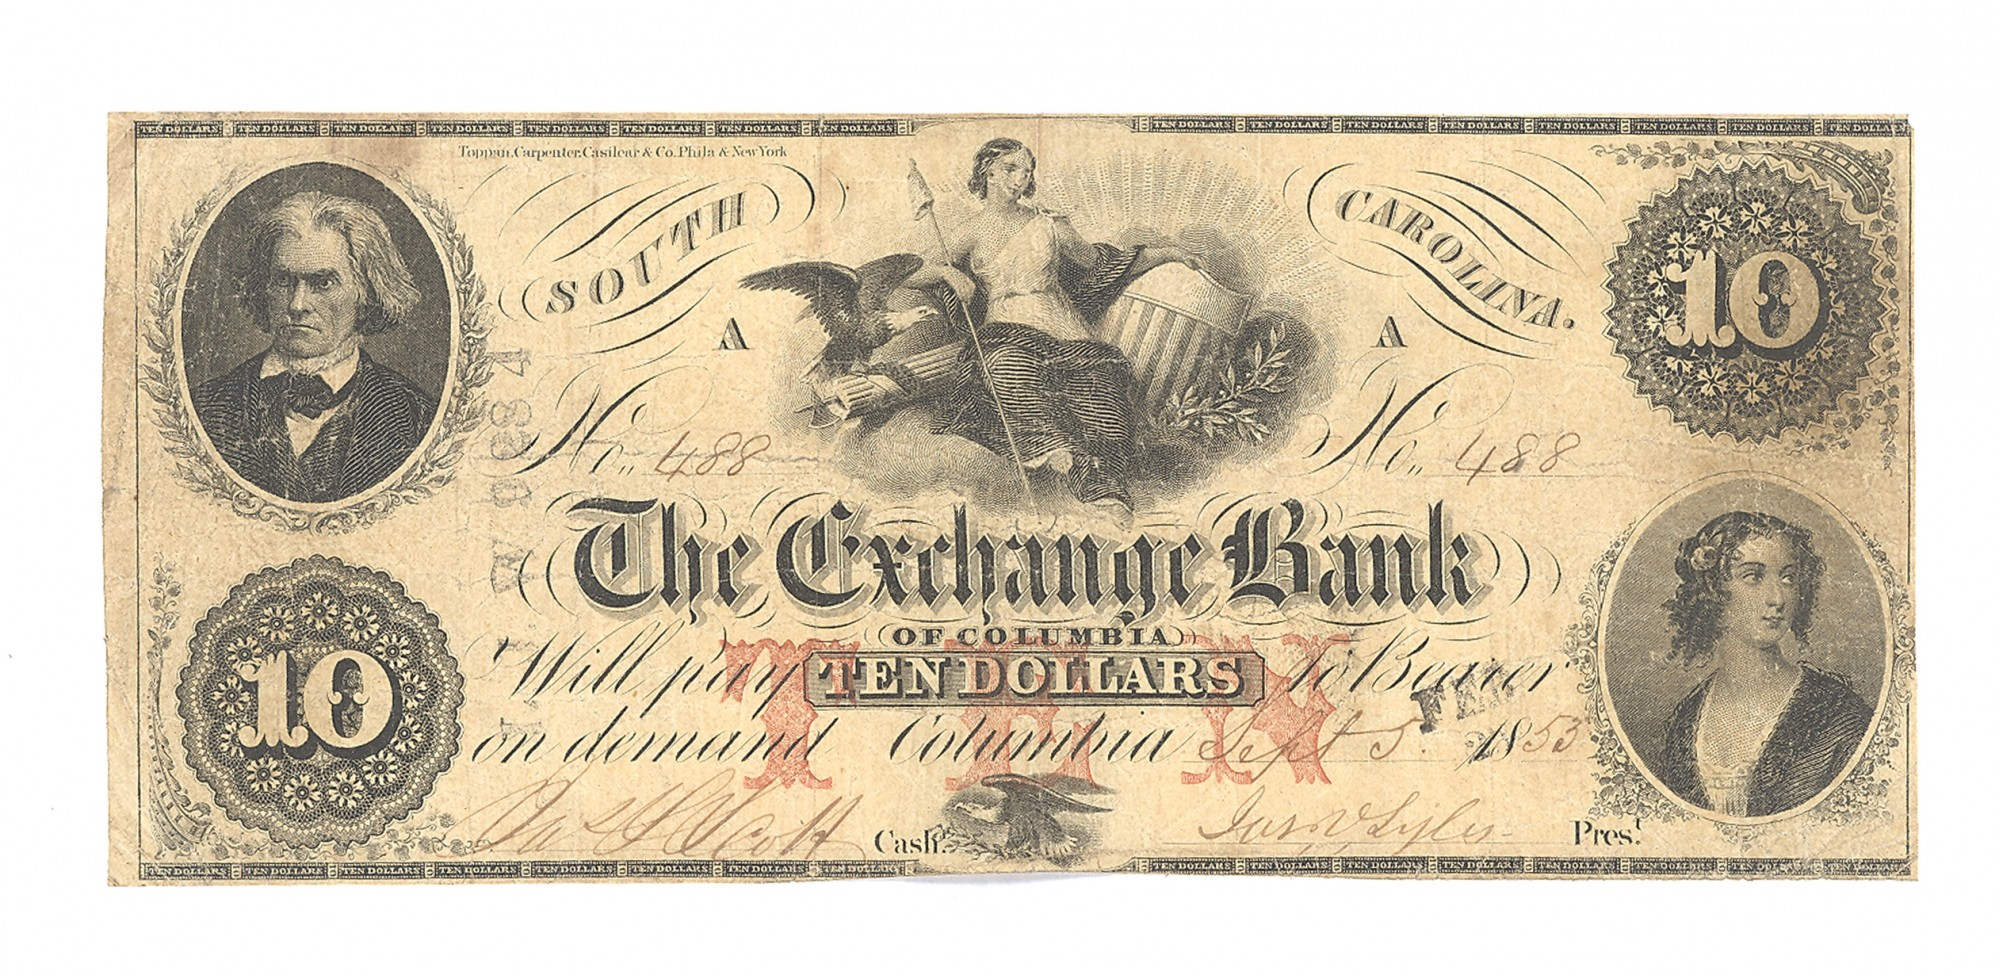 EXCHANGE BANK OF COLUMBIA, SOUTH CAROLINA $10 NOTE